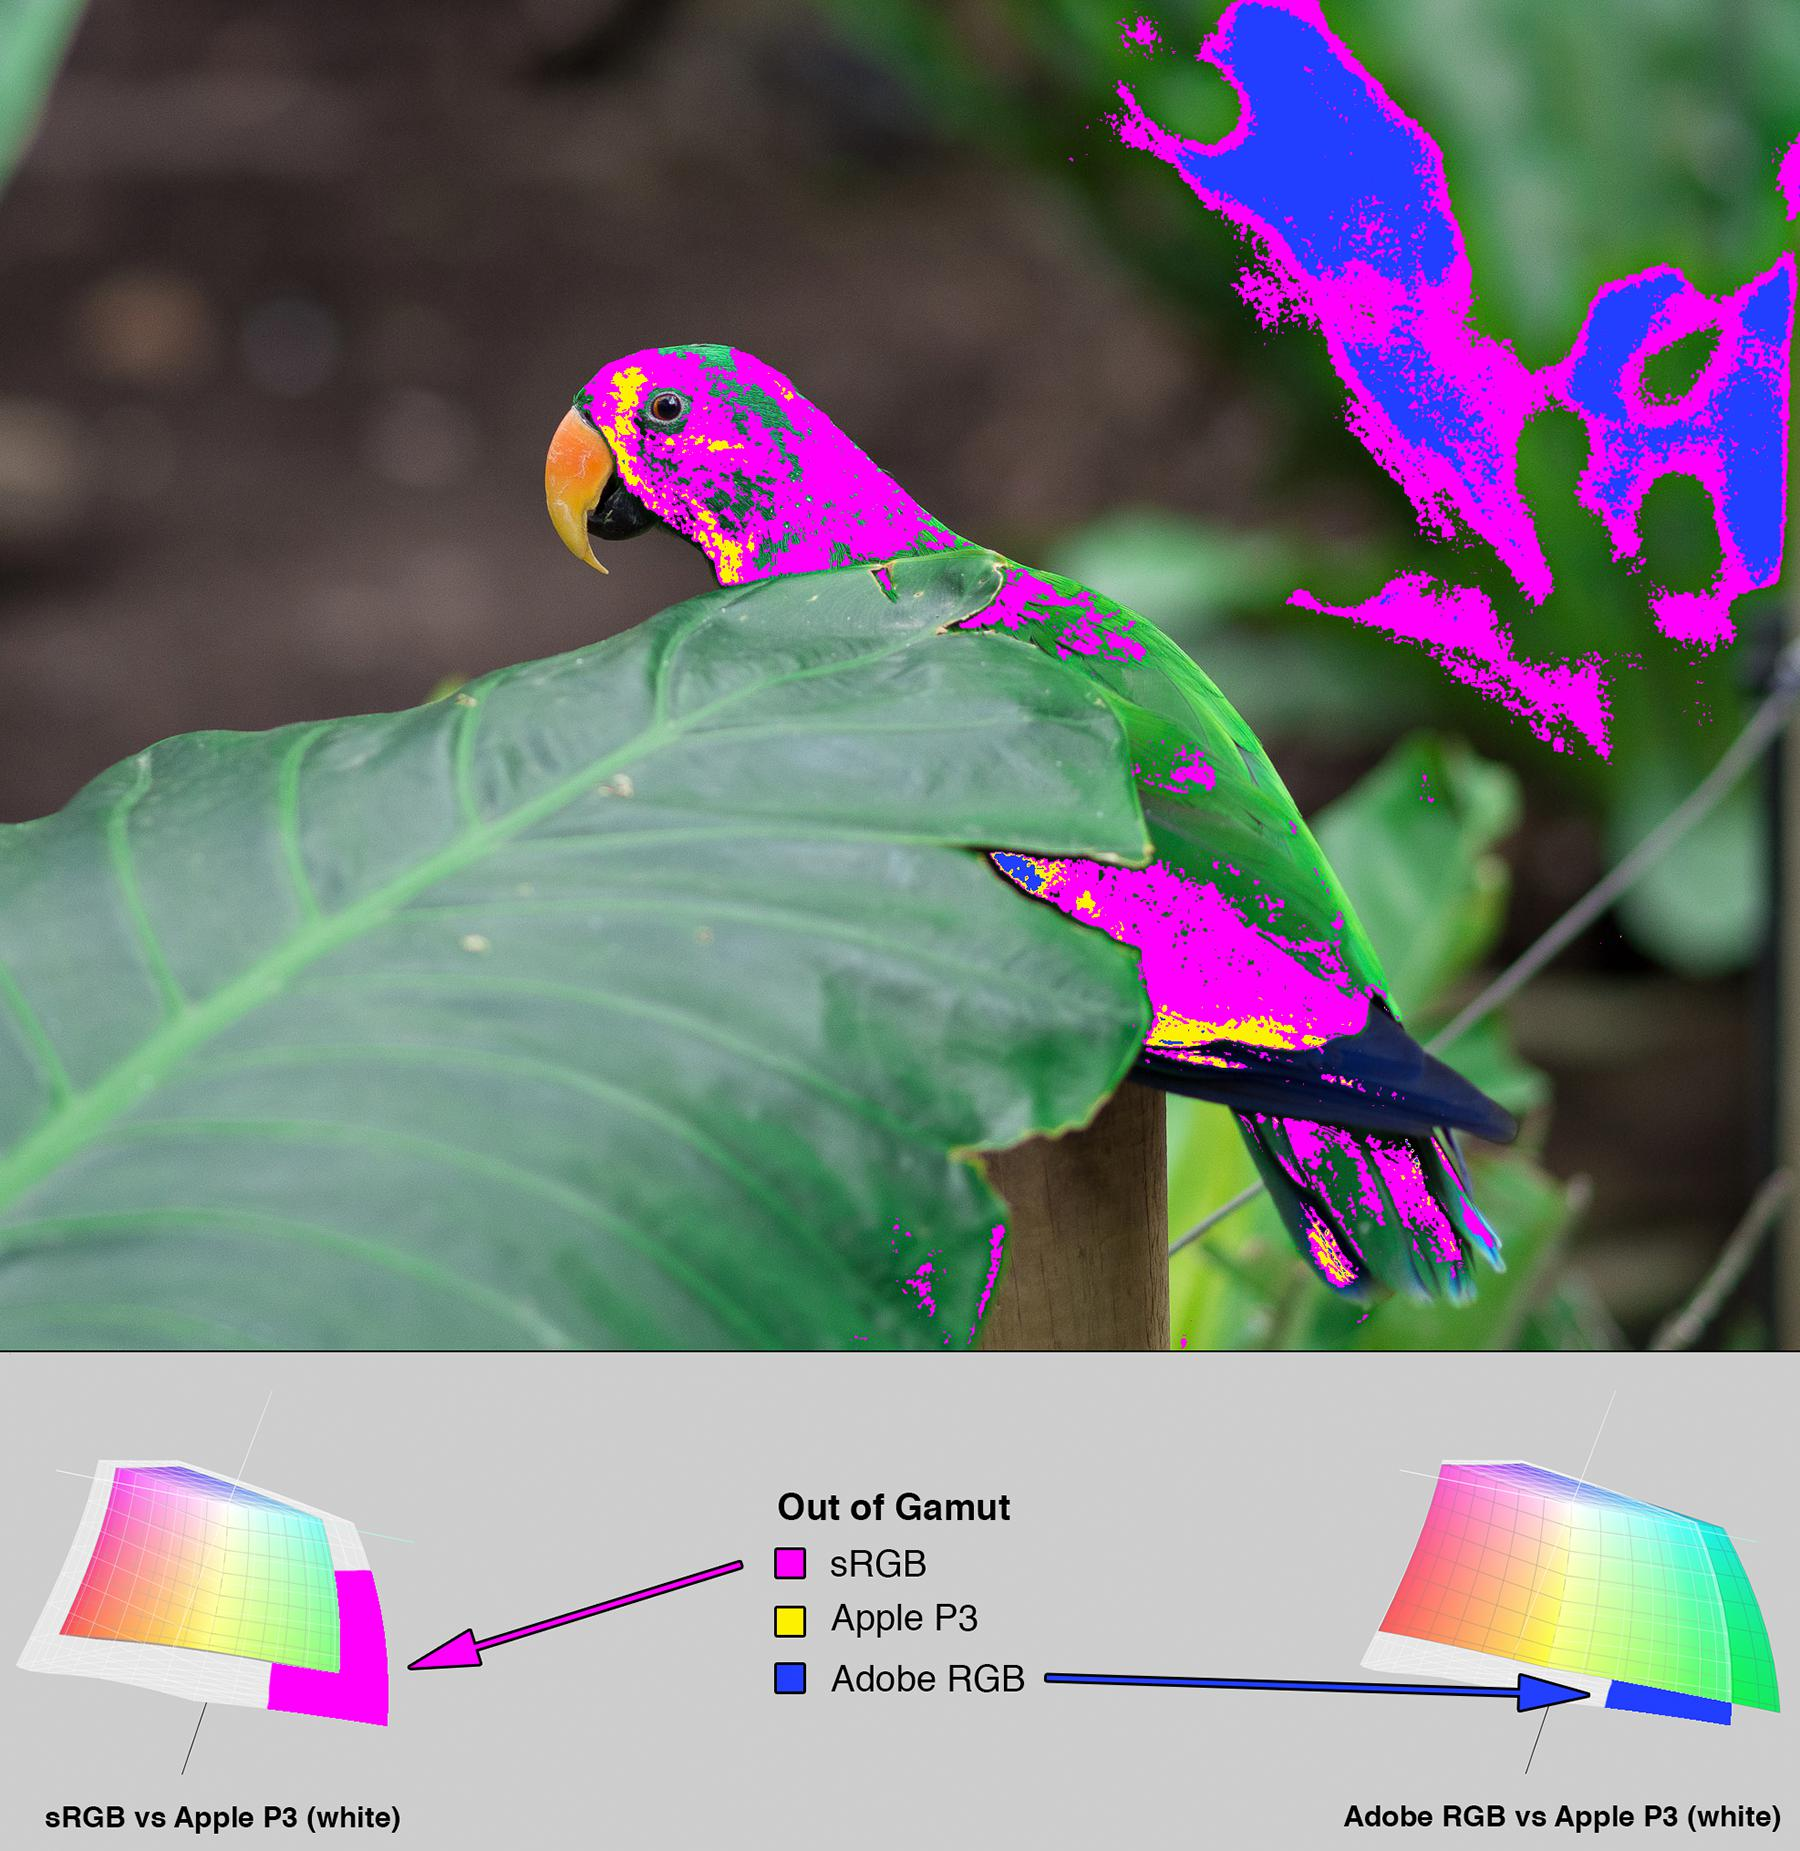 Parrot photo from Figure 12. Overlaid with a heat map indicating which ares of the image are out of gamut. At the bottom of the image is a section with 3D LAB plots showing how the colorspaces differ.